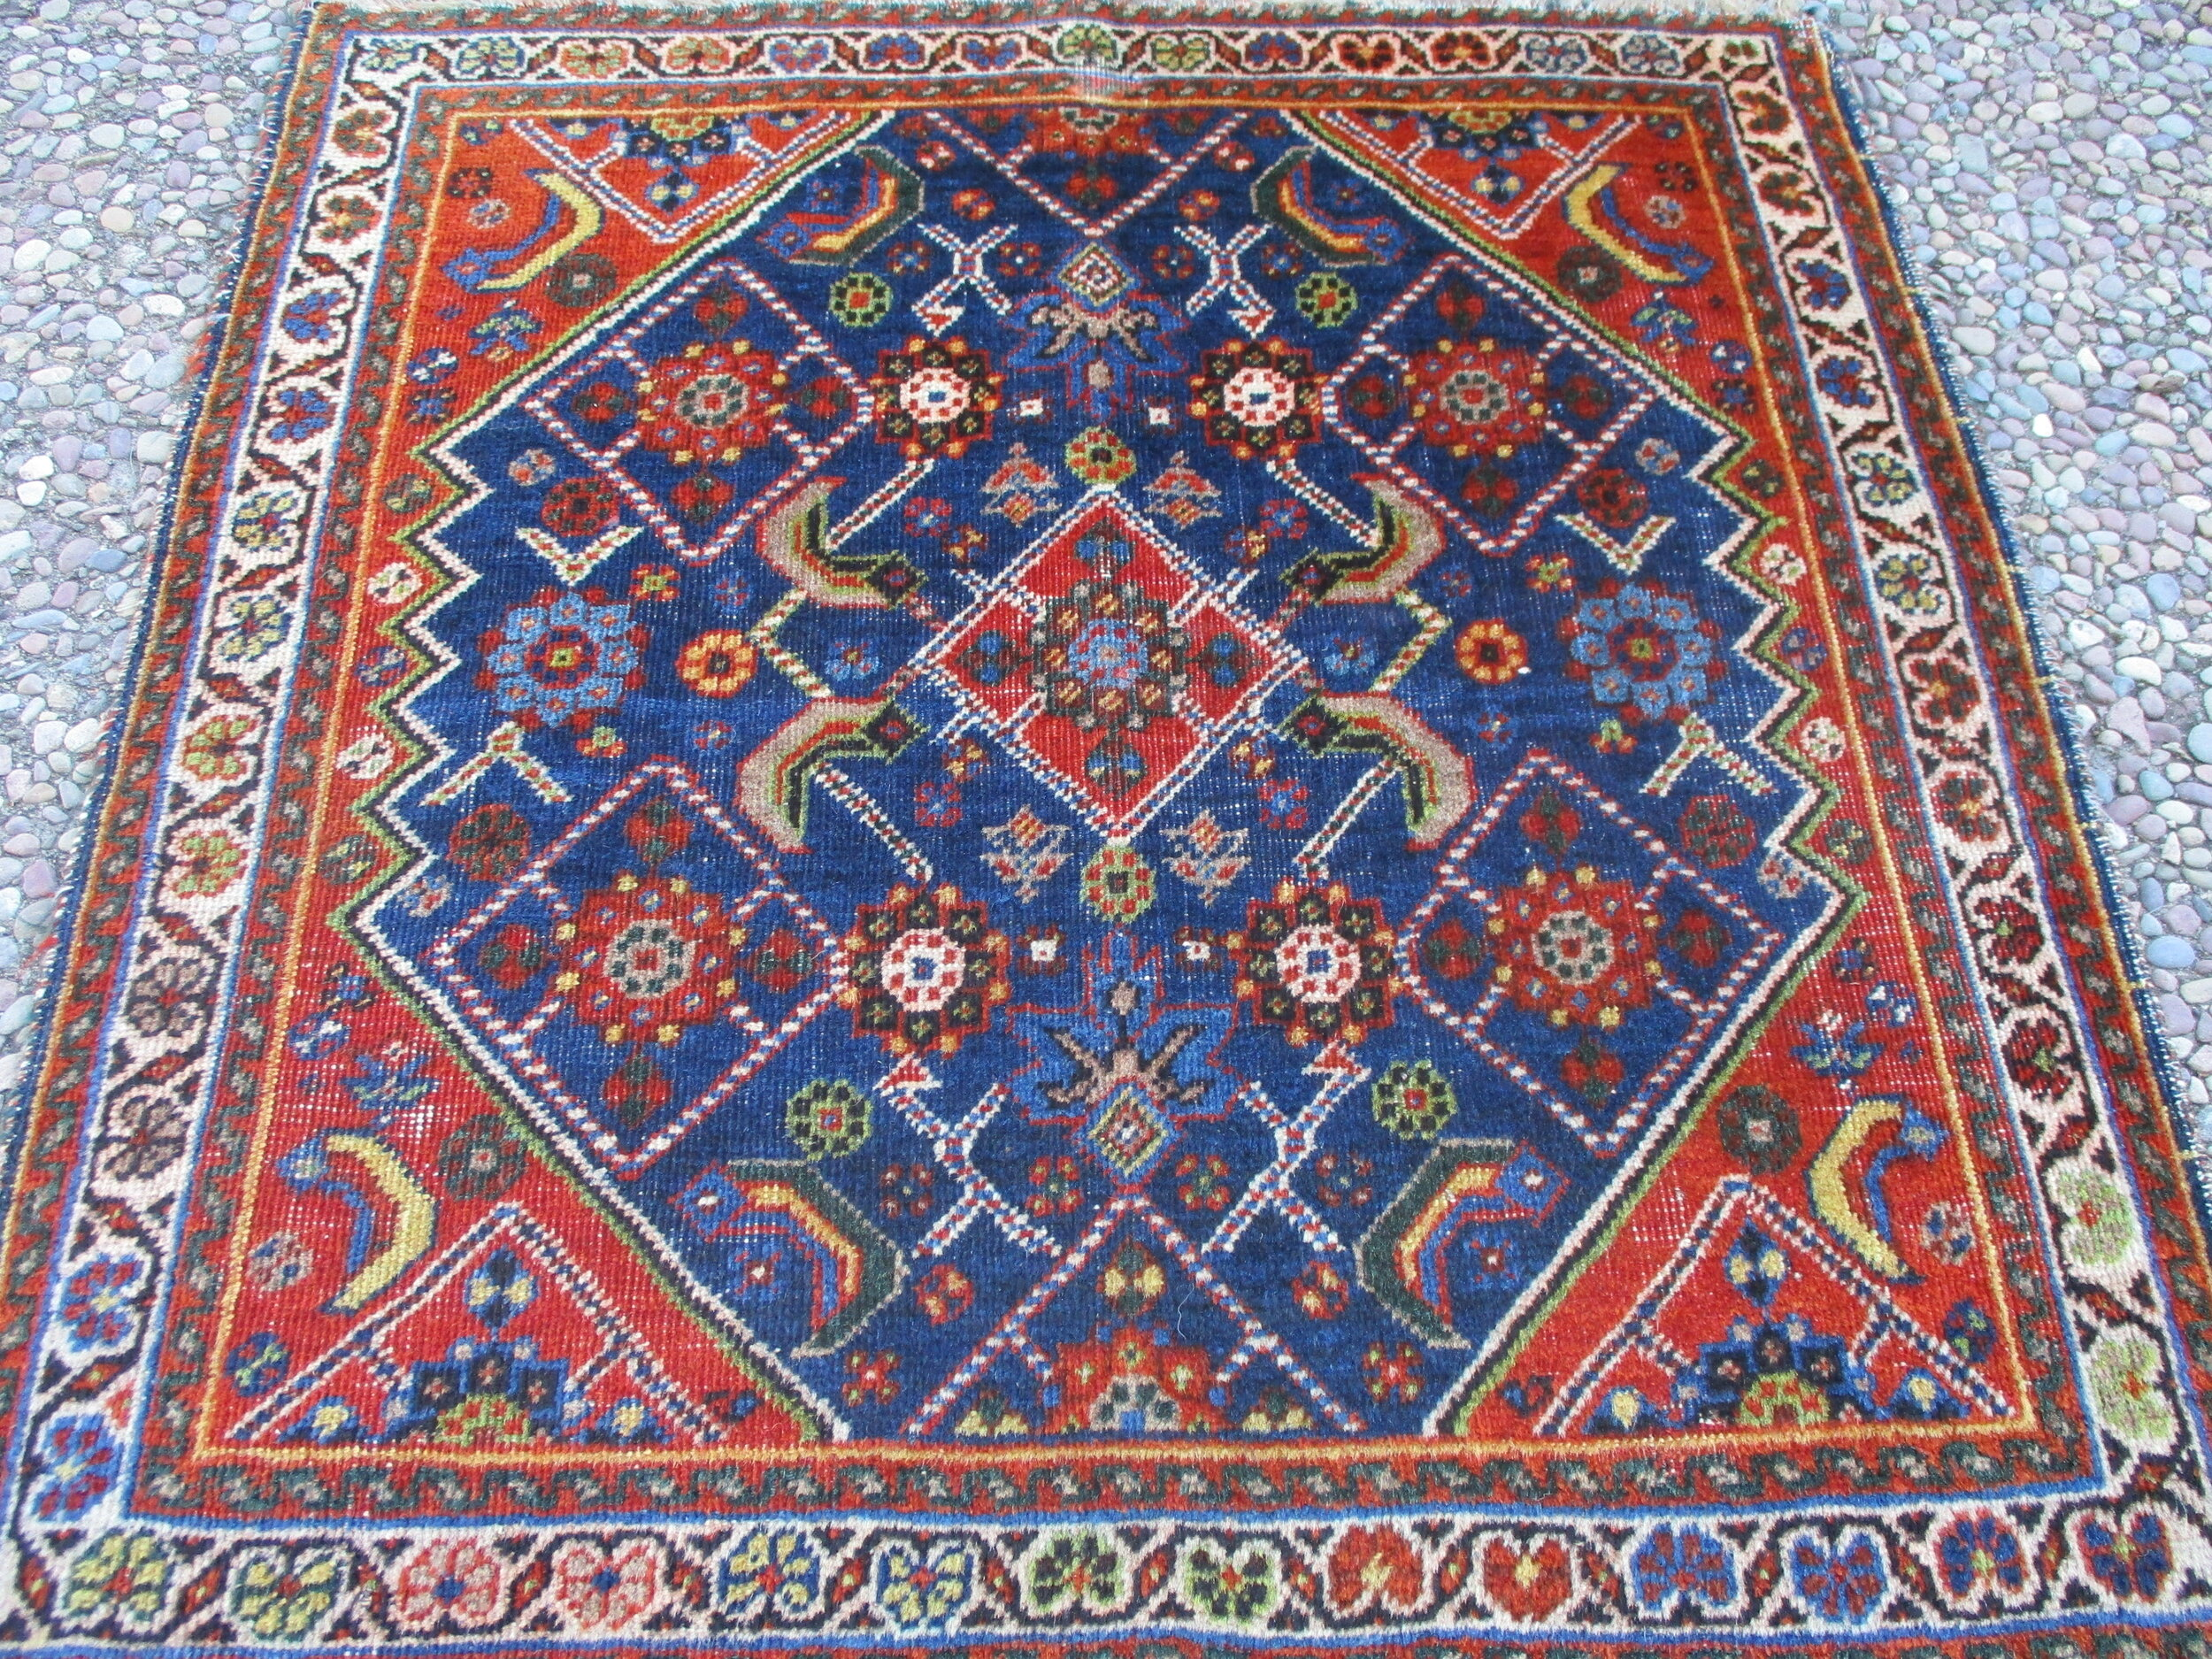 2' x 2' Beautiful antique Qashqai bagface. (front of an antique saddlebag) Very finely woven with gorgeous colors and a detailed drawing.